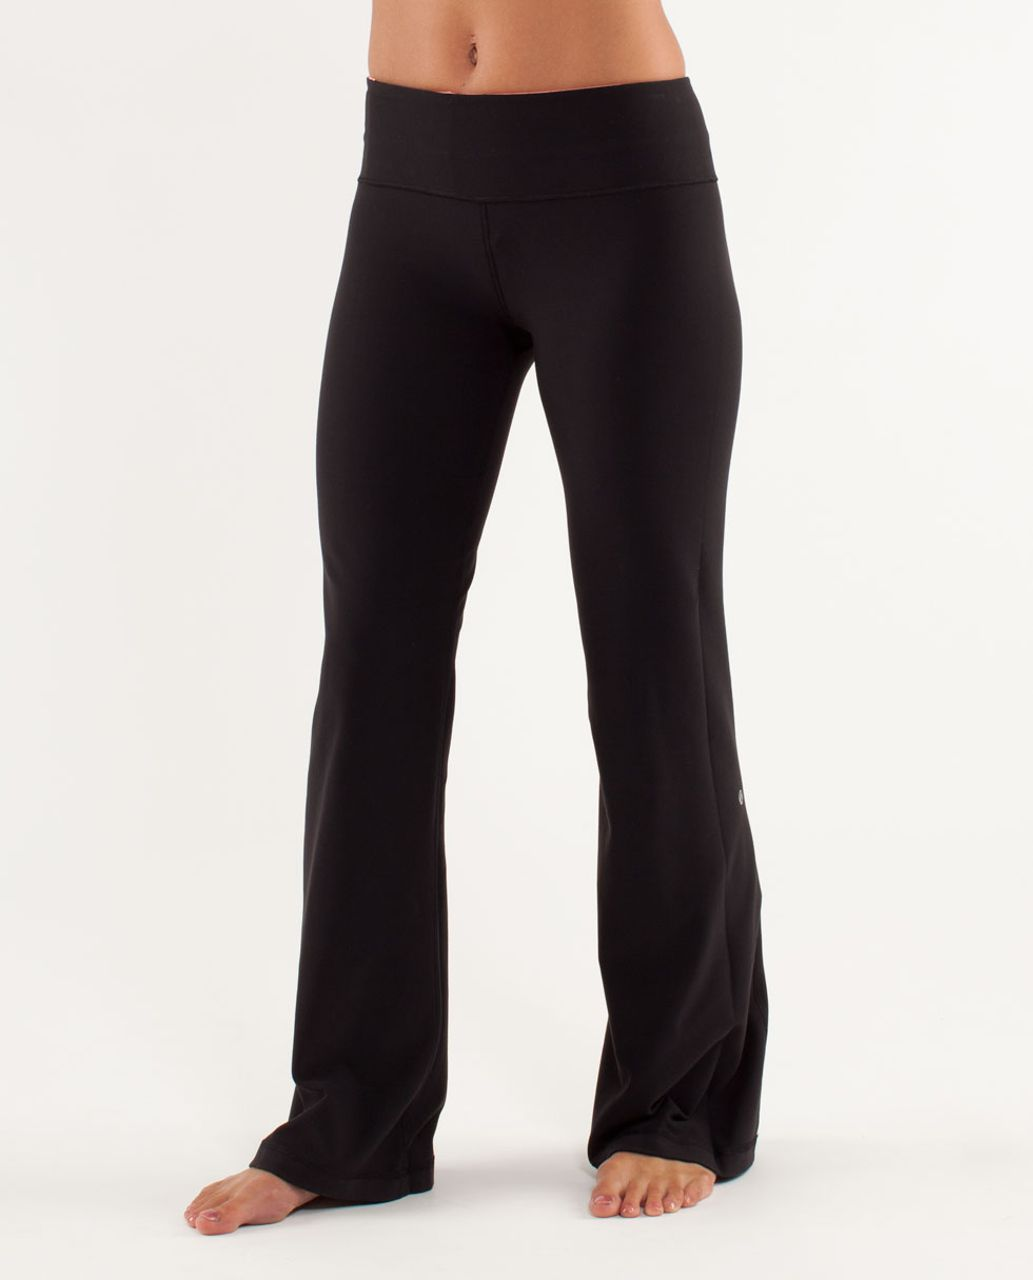 Lululemon Groove Pant (Tall) - Black / Heathered Pop Orange / Pow Pink